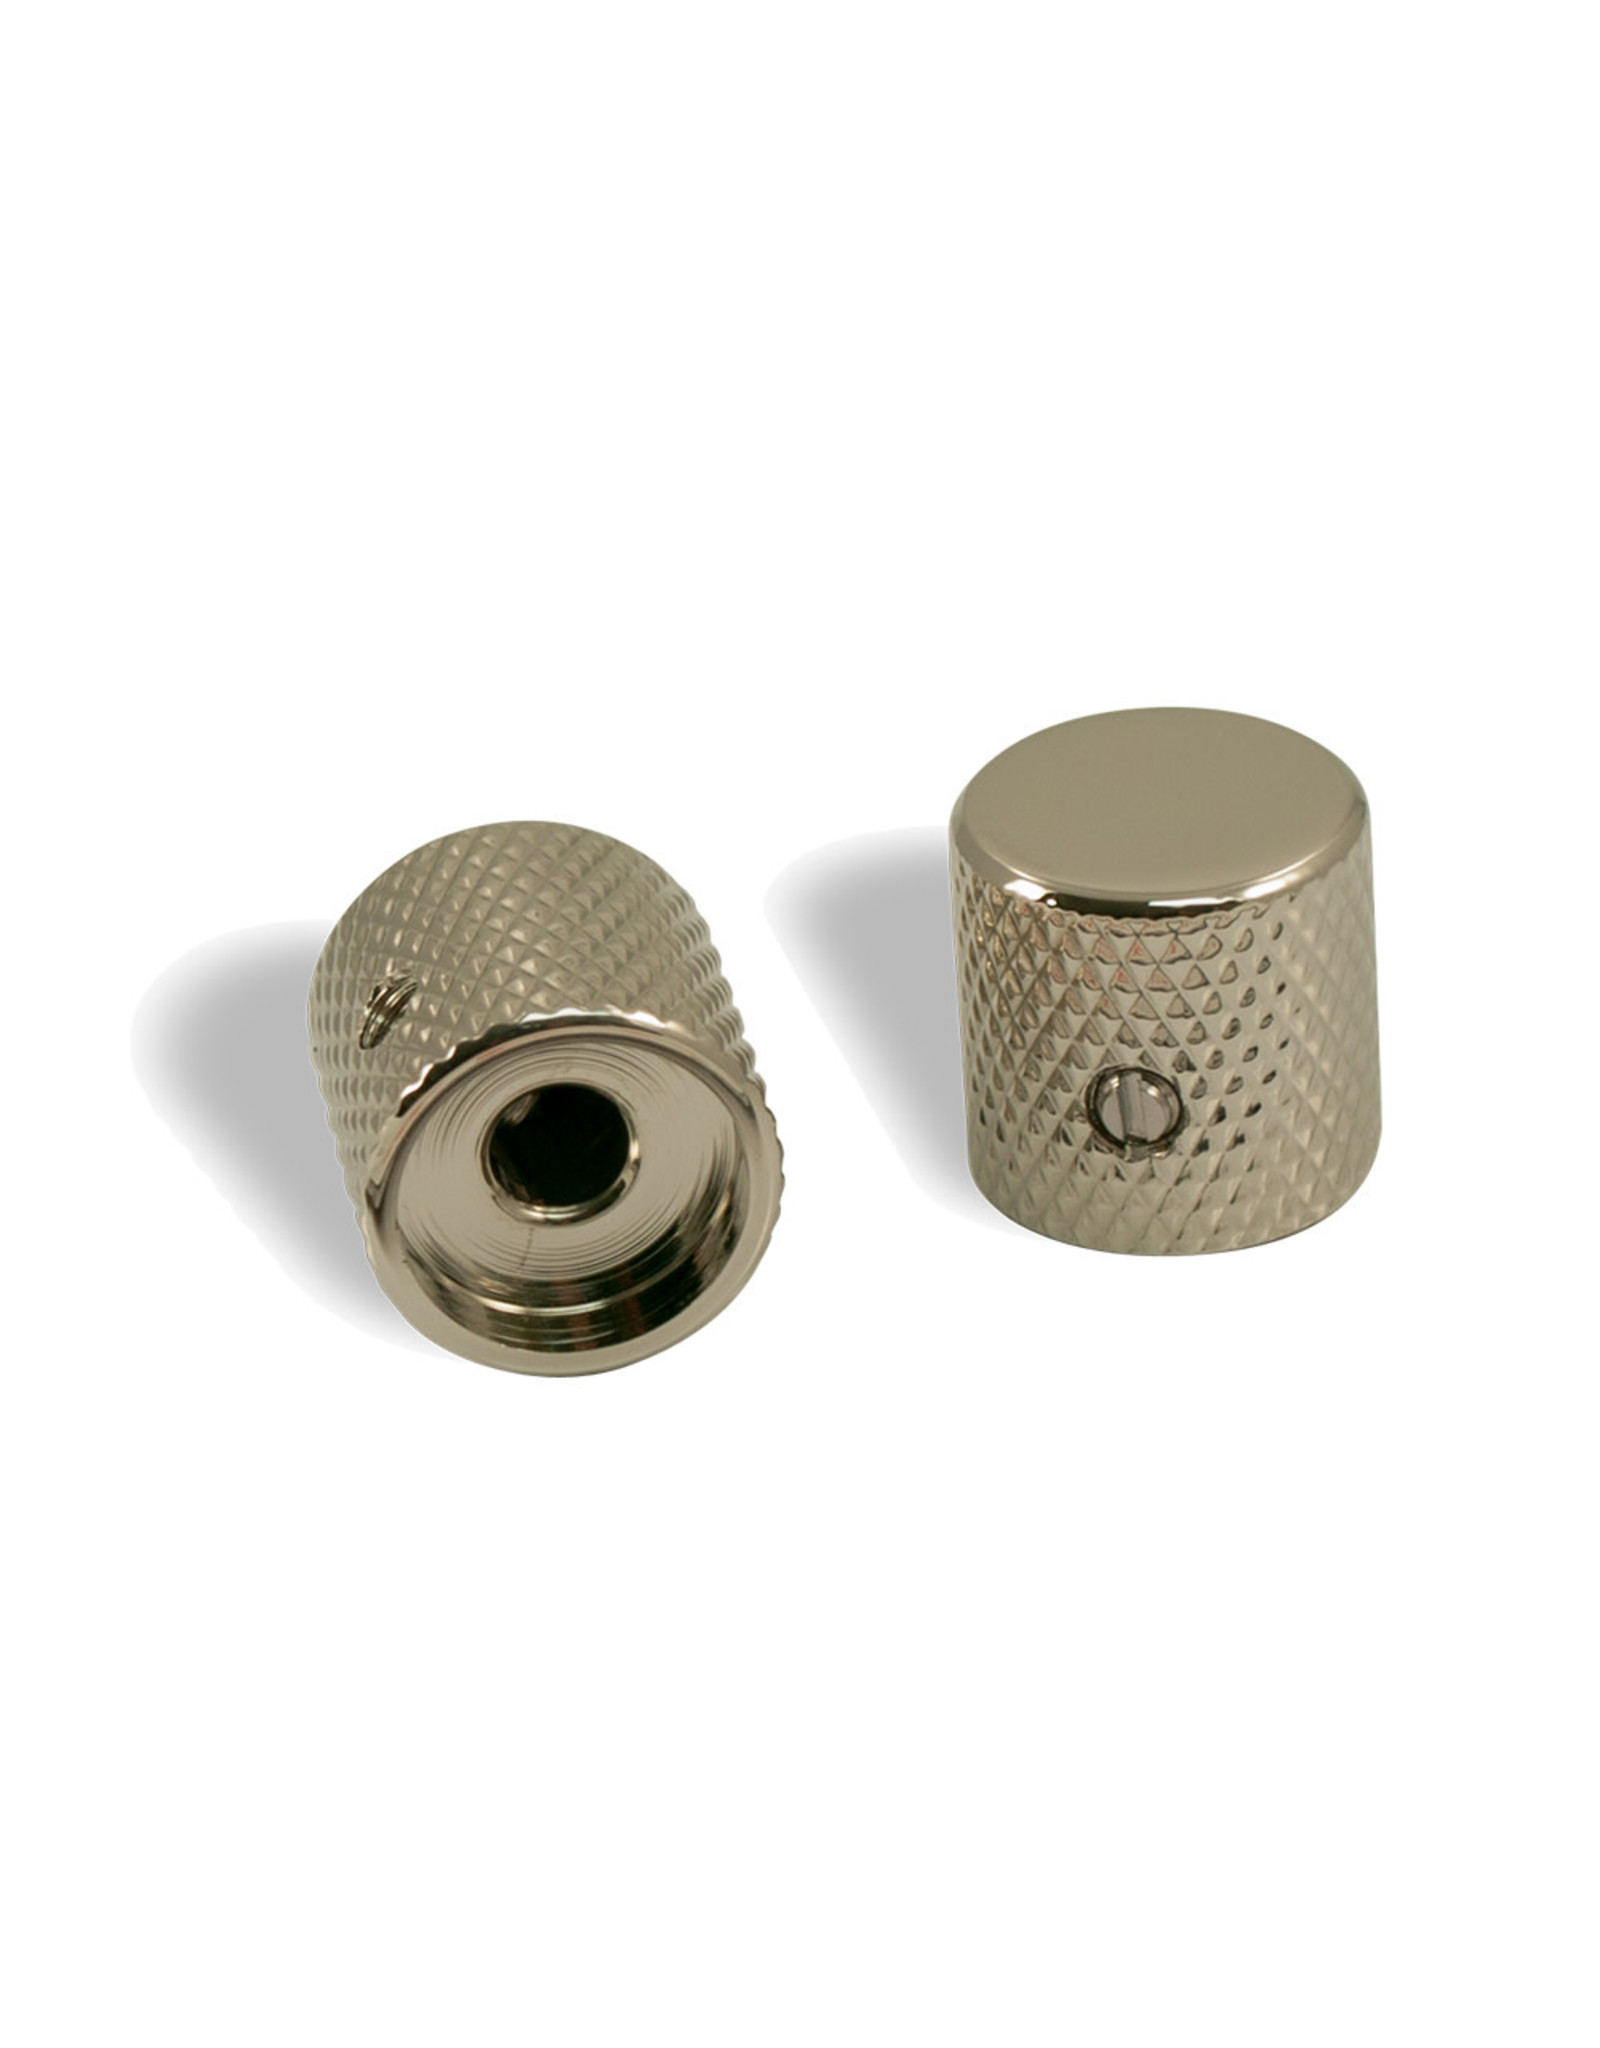 WD Music Products WD® Brass Barrel Knob Set Of 2 With 1/4 in. Internal Diameter Nickel